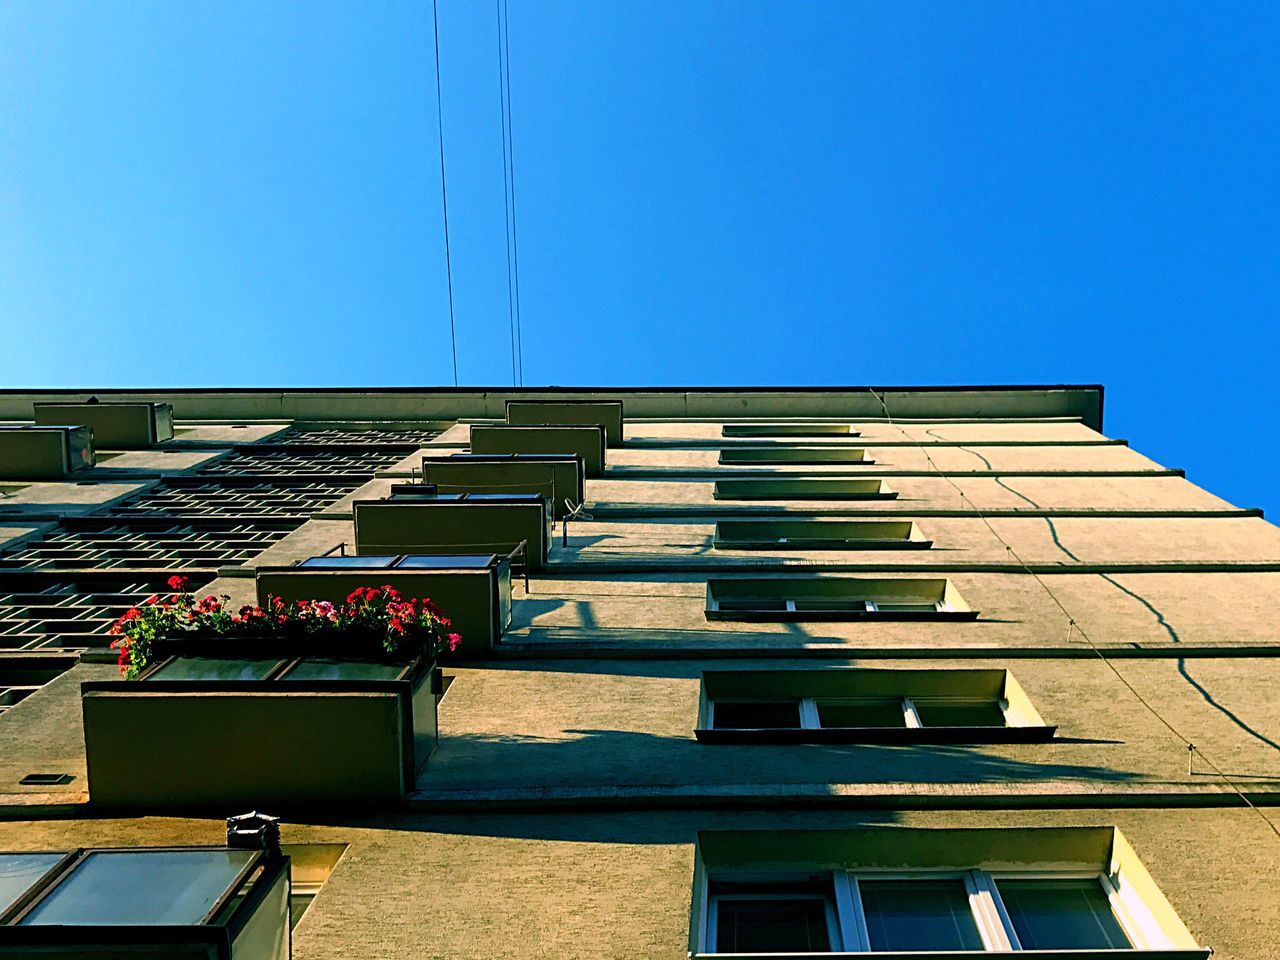 architecture, building exterior, built structure, clear sky, day, blue, copy space, sunlight, outdoors, low angle view, real people, city, sky